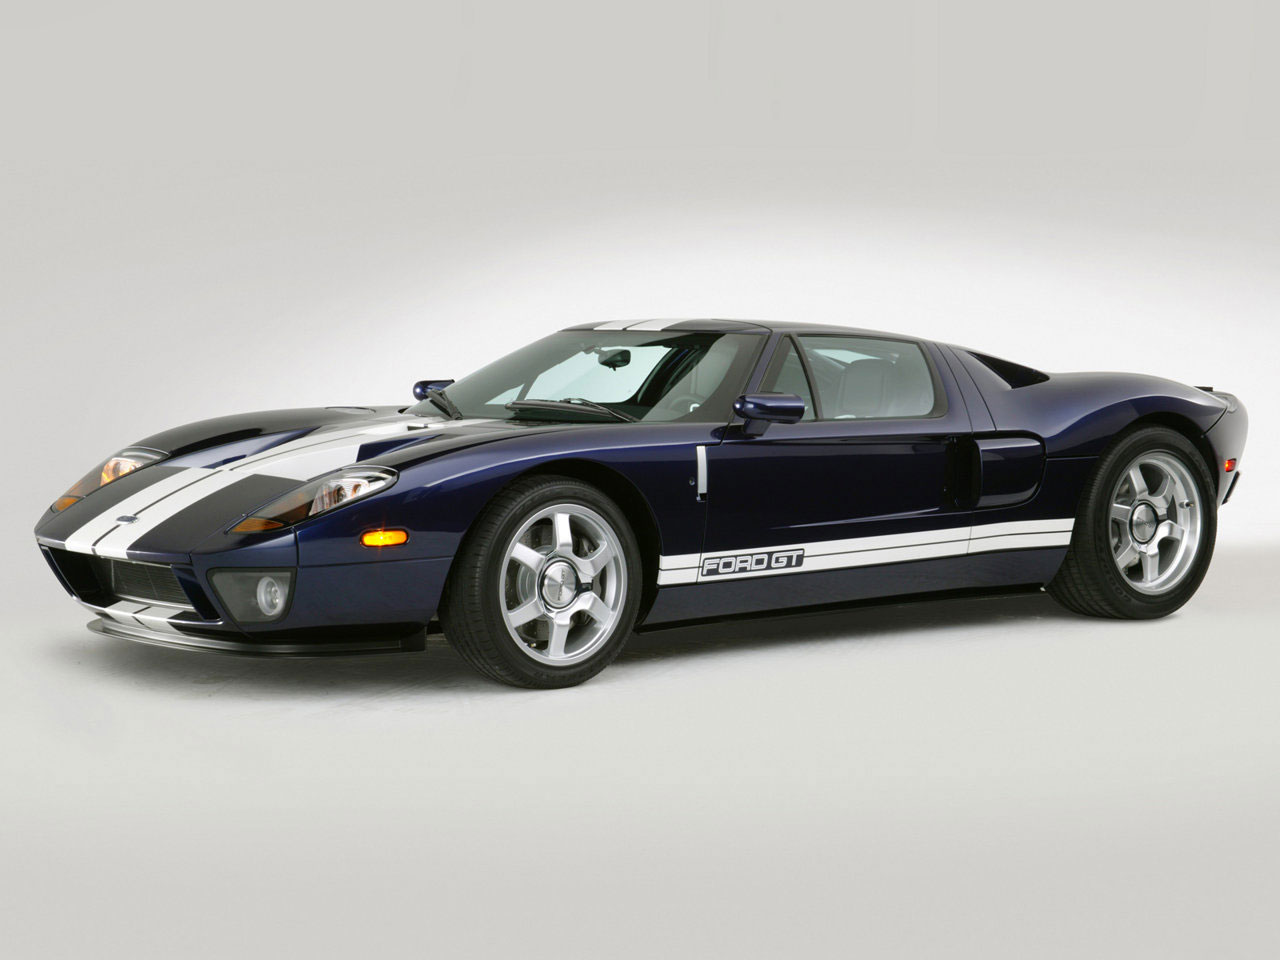 Gallery FORD Ford GT 2005 Ford GT wallpaper 1280x960